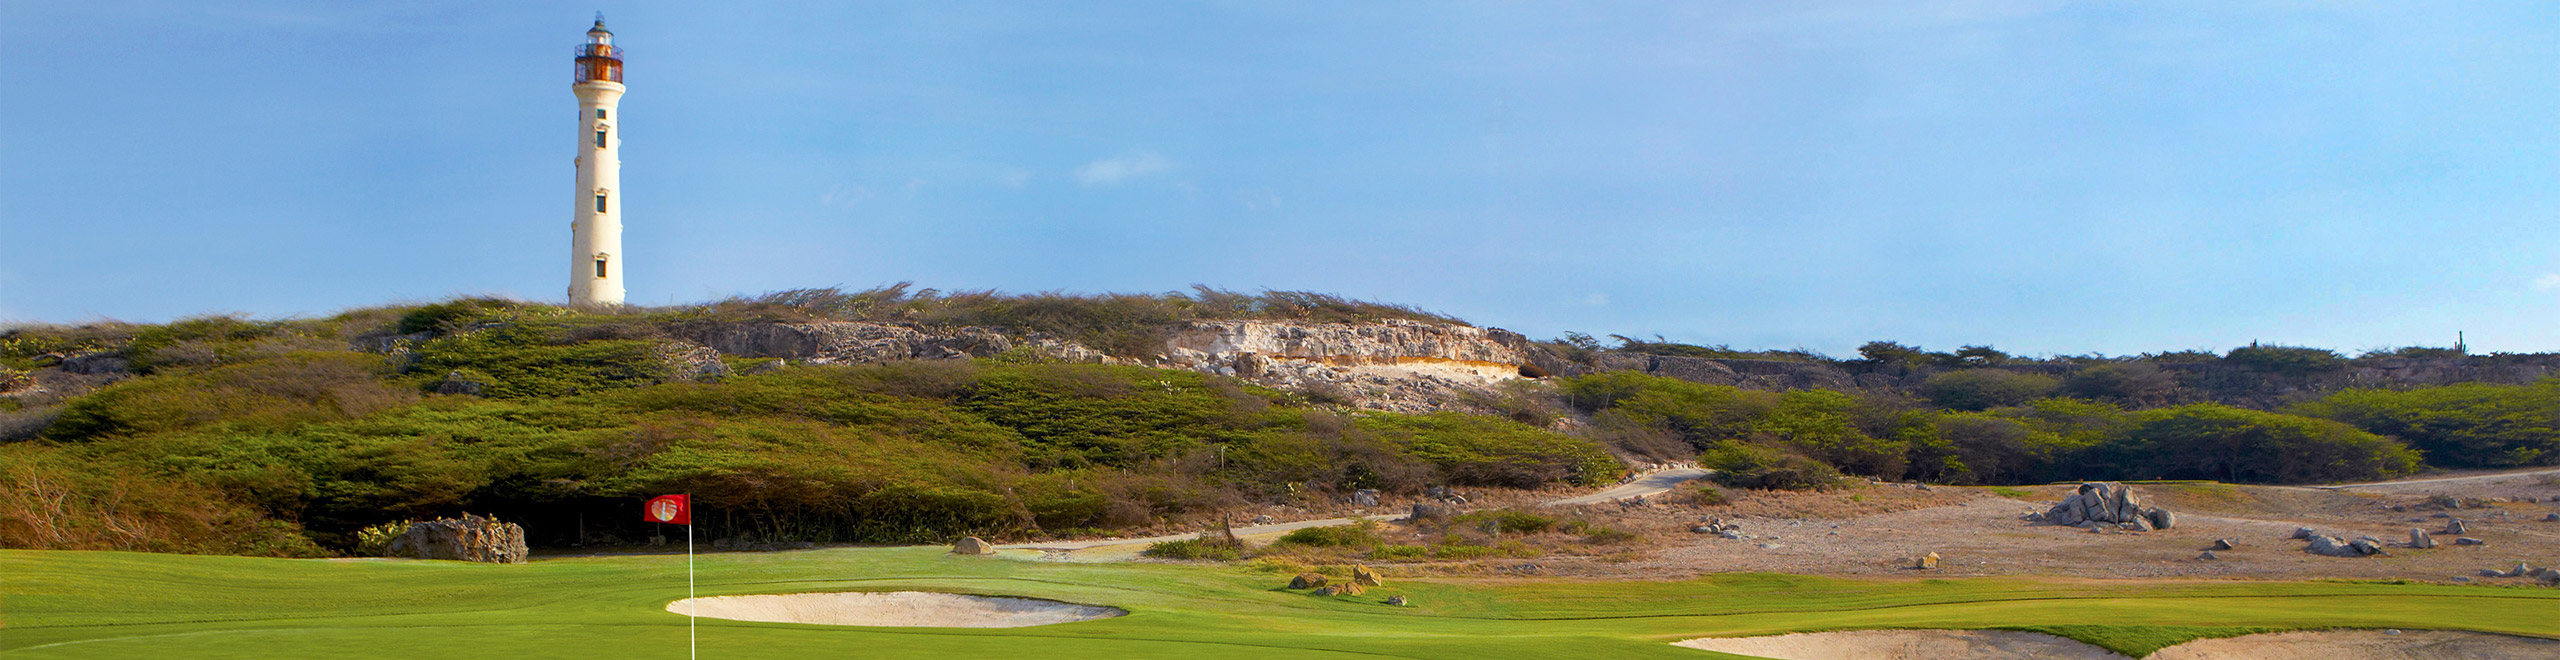 Golf_-View-at-Tierra-Del-Sol-Golf-Course.jpg